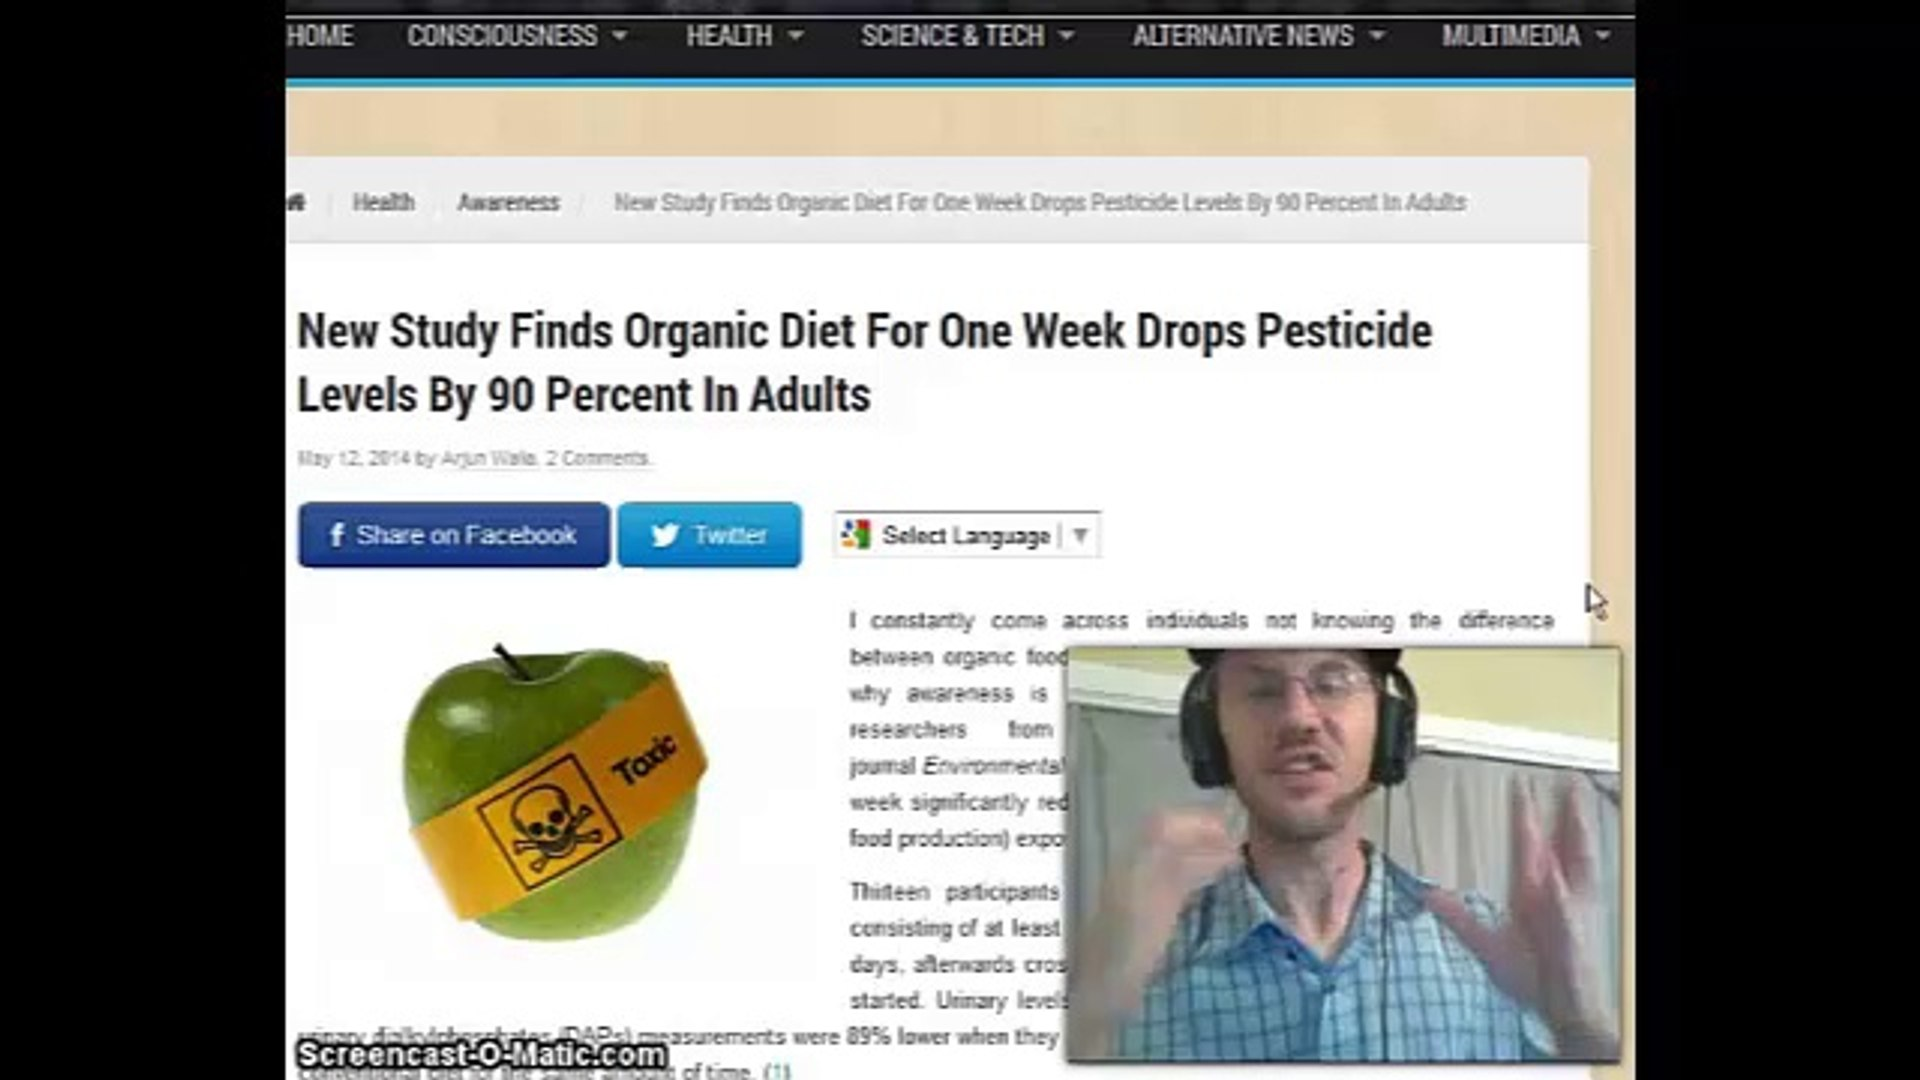 New Study Finds Organic Diet For One Week Drops Pesticide Levels By 90 Percent In Adults